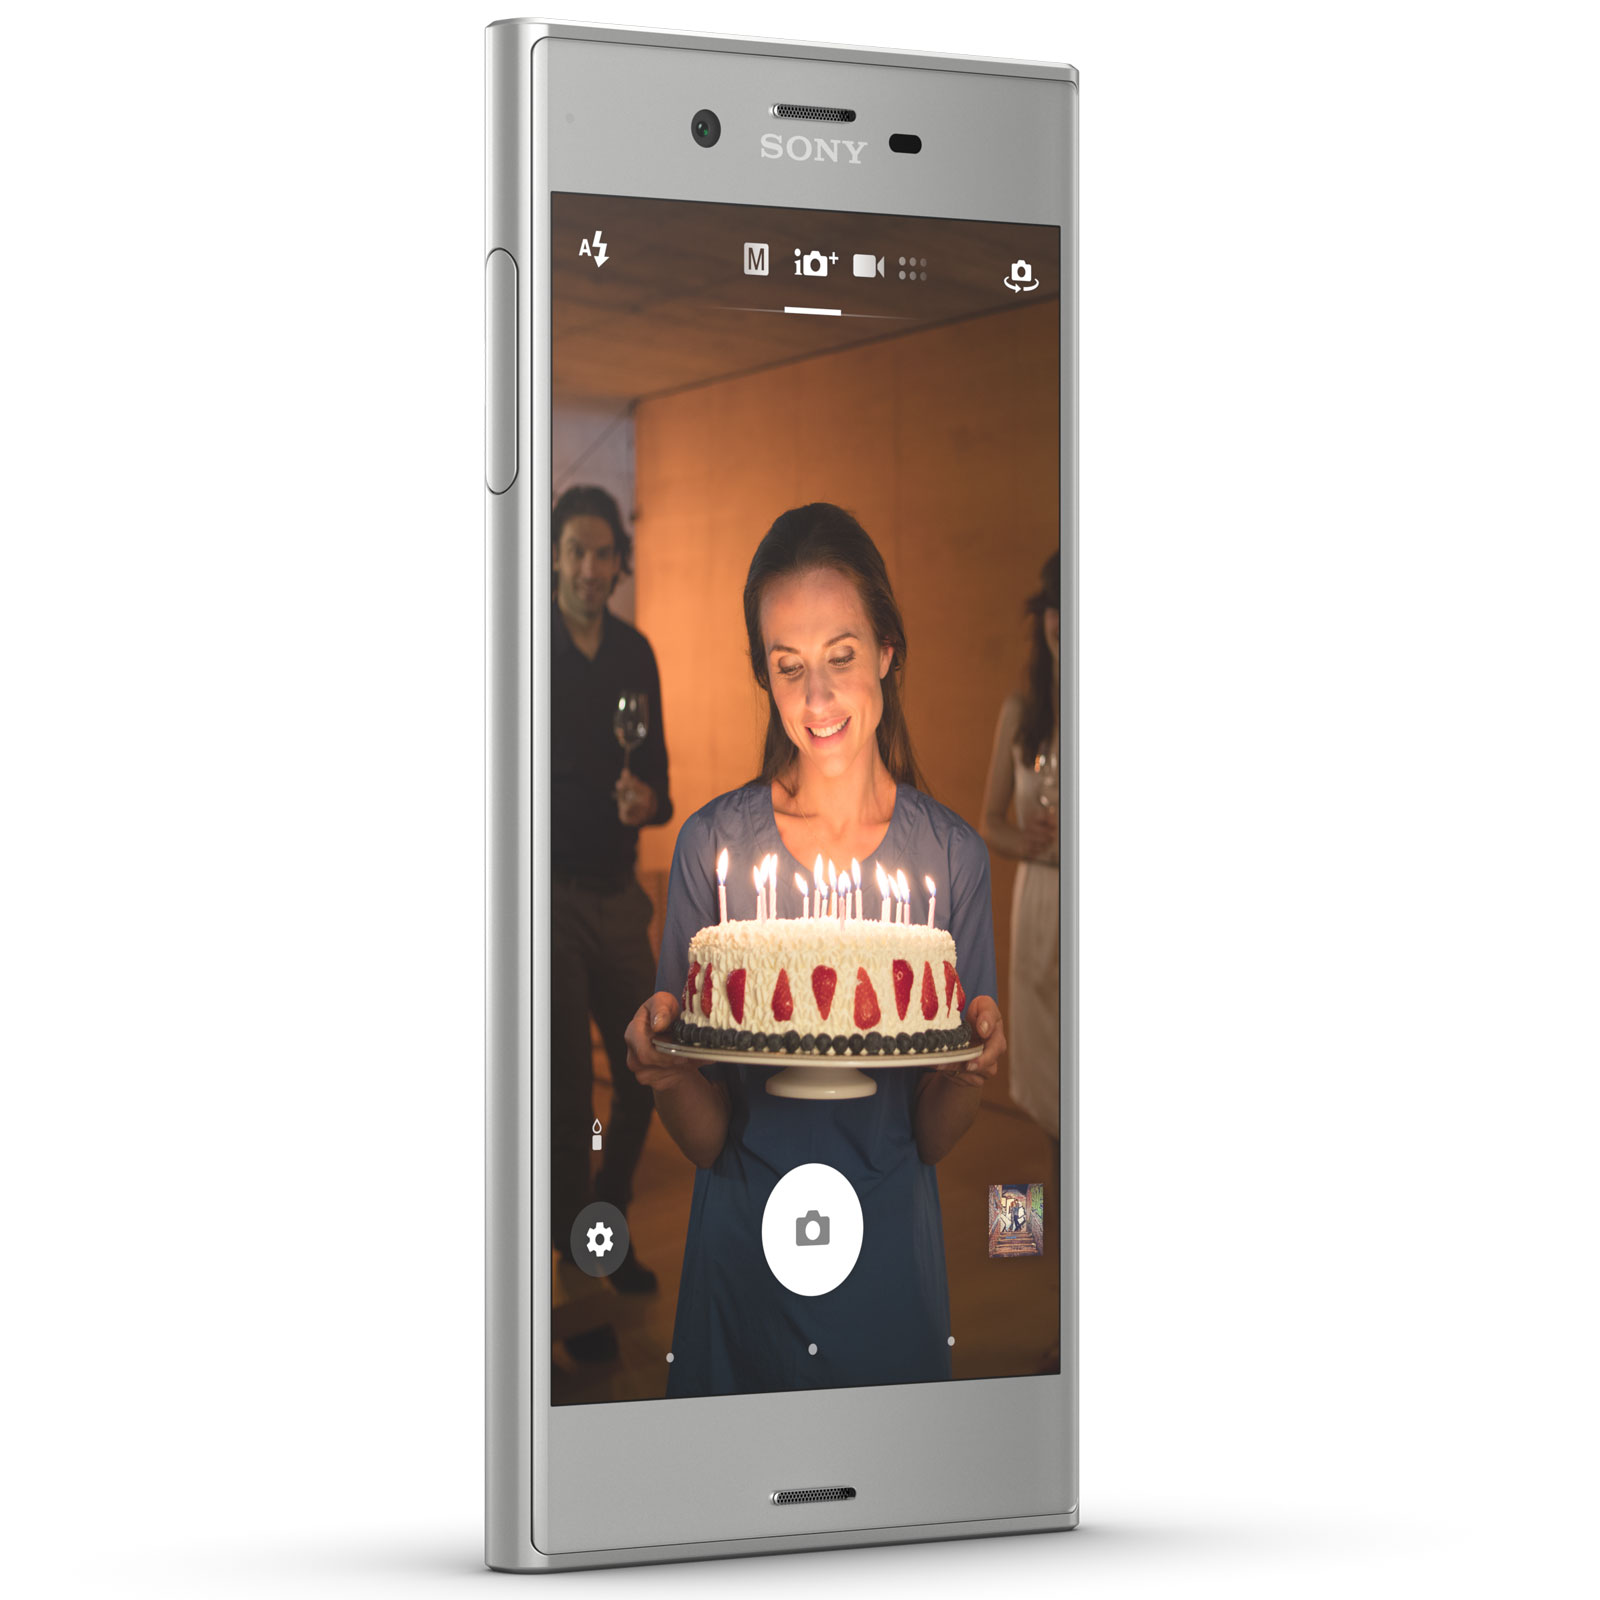 sony xperia xz 32 go platine mobile smartphone sony sur ldlc. Black Bedroom Furniture Sets. Home Design Ideas